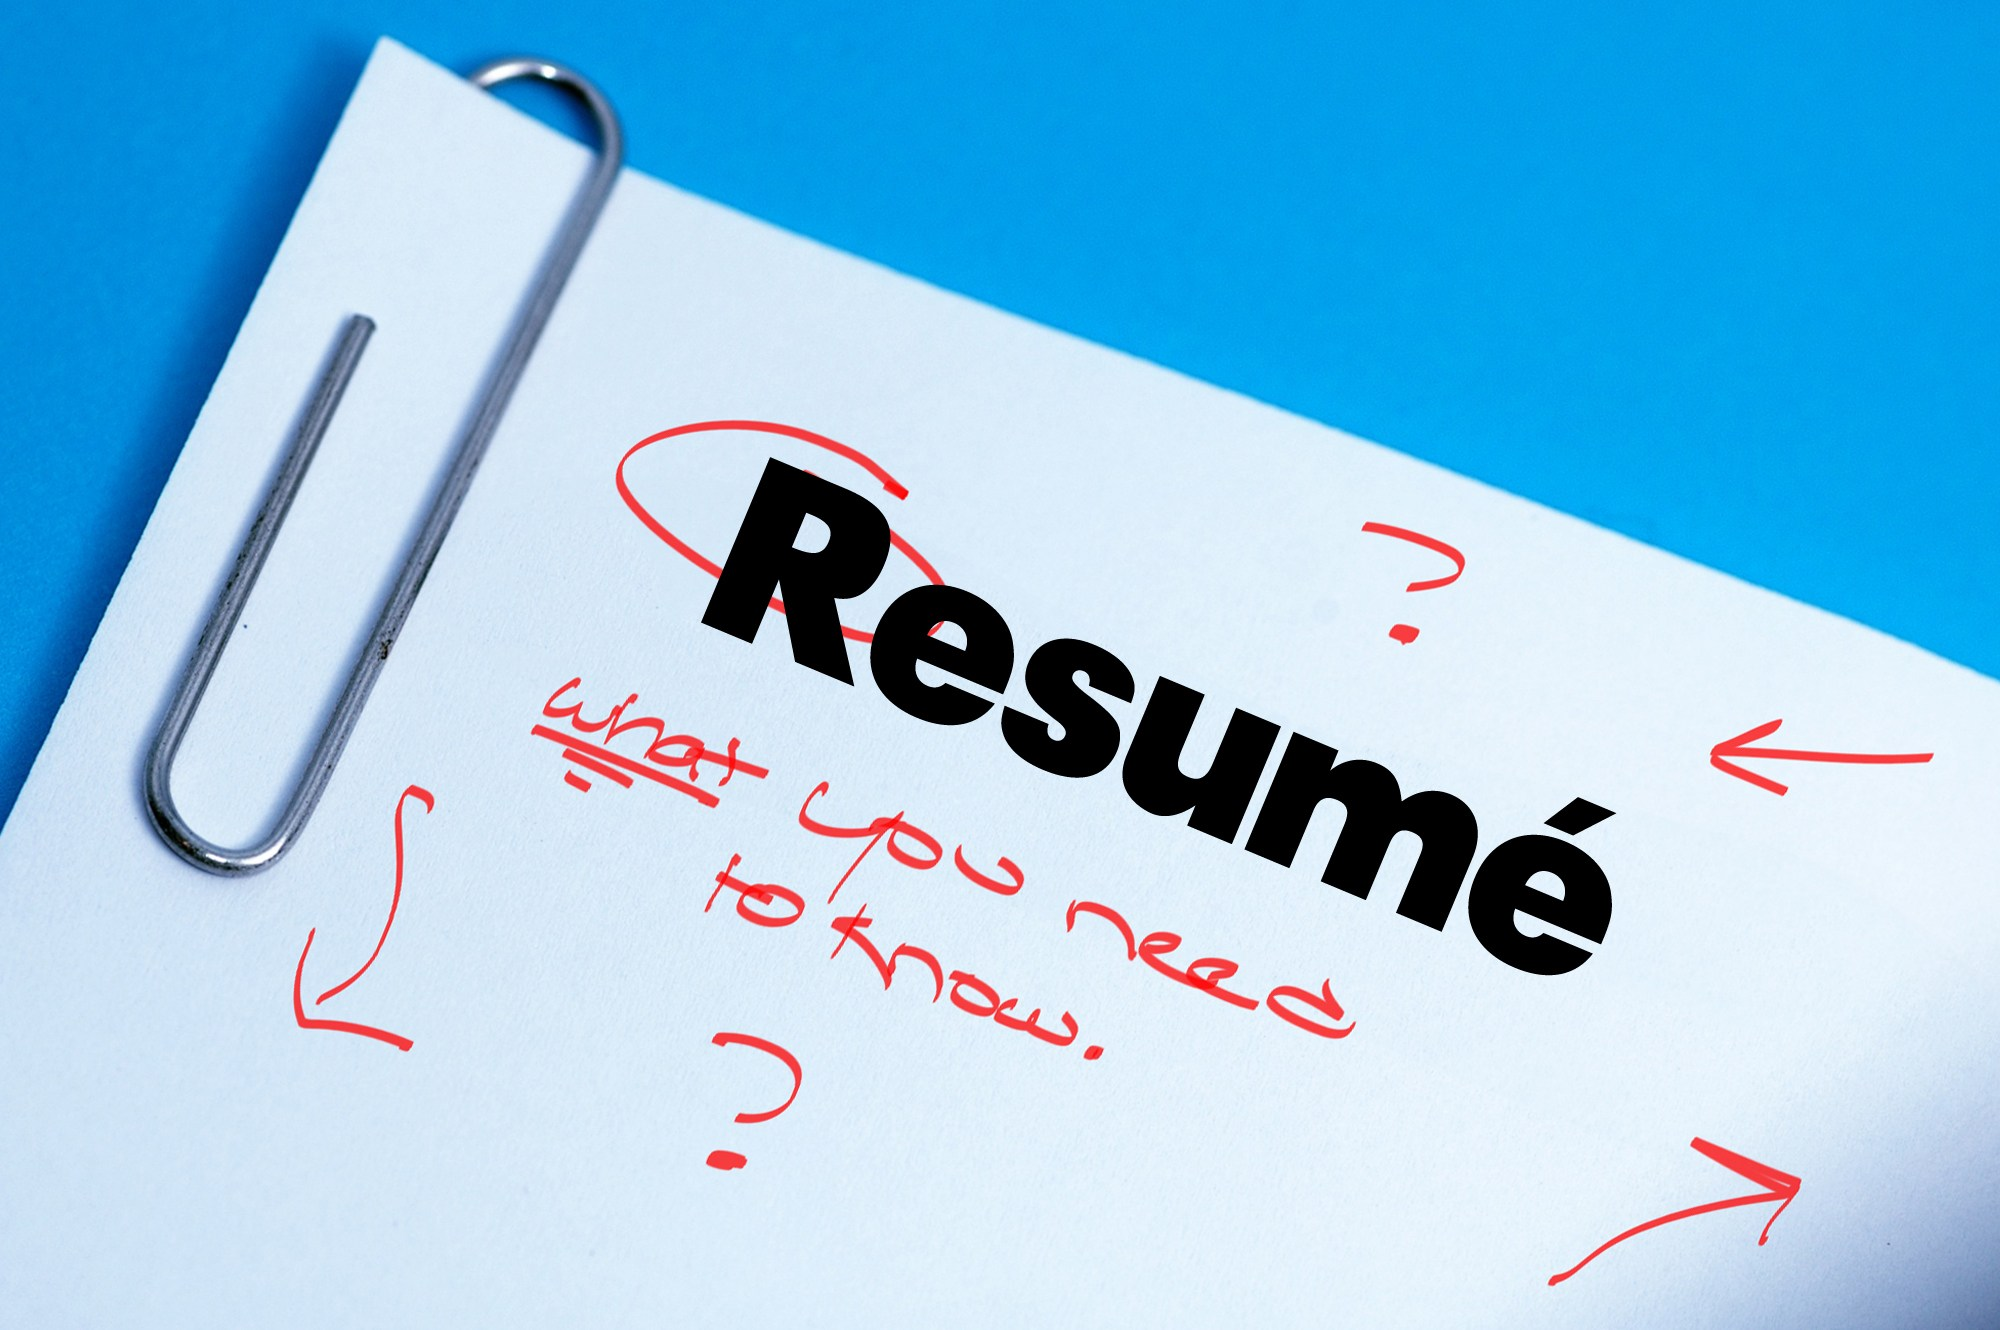 do your resume and cover letter included